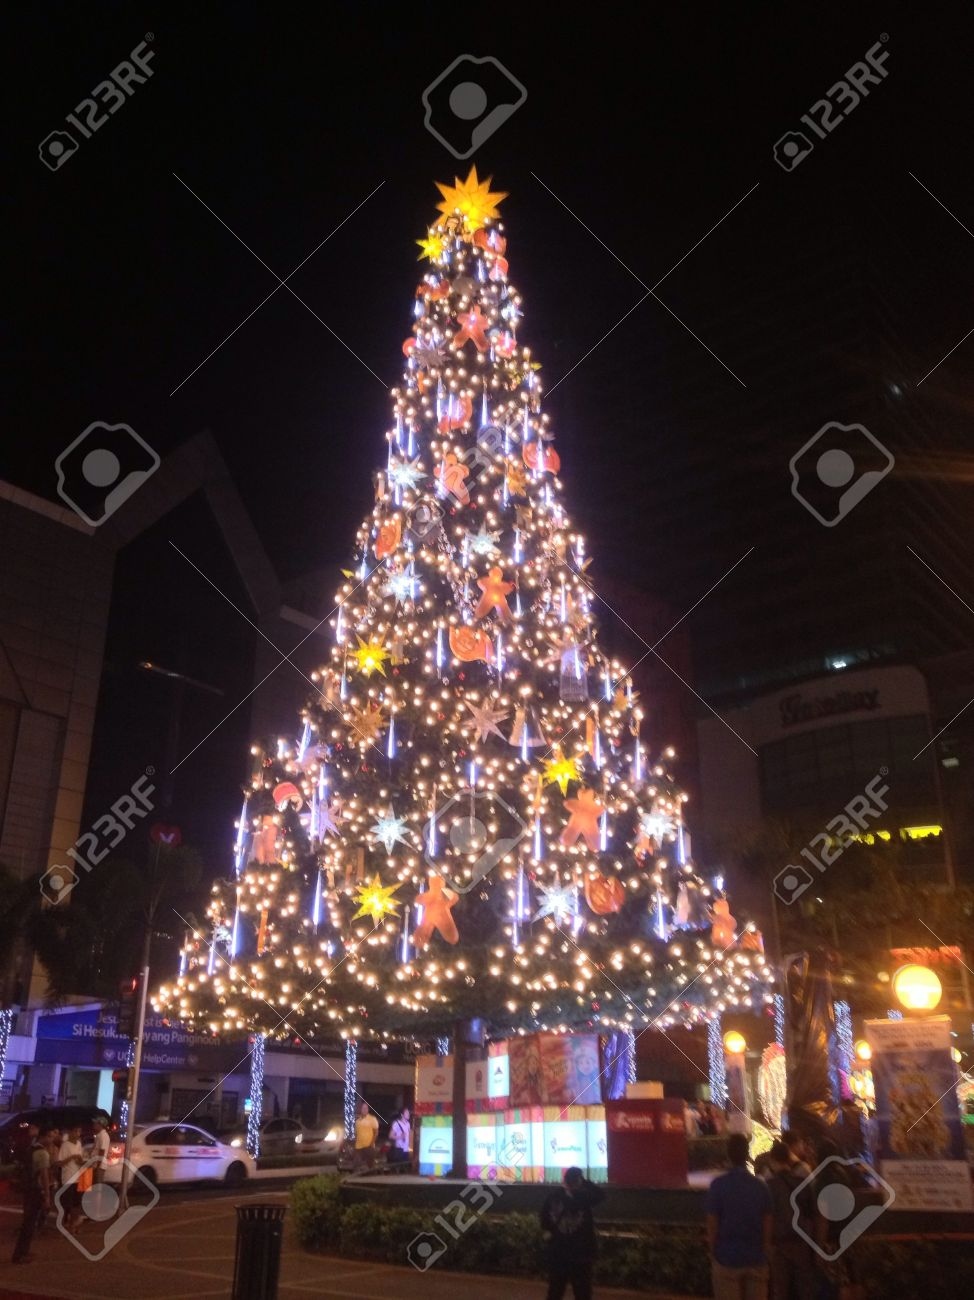 Big Christmas Tree Decorated With Lights Stock Photo, Picture And ...